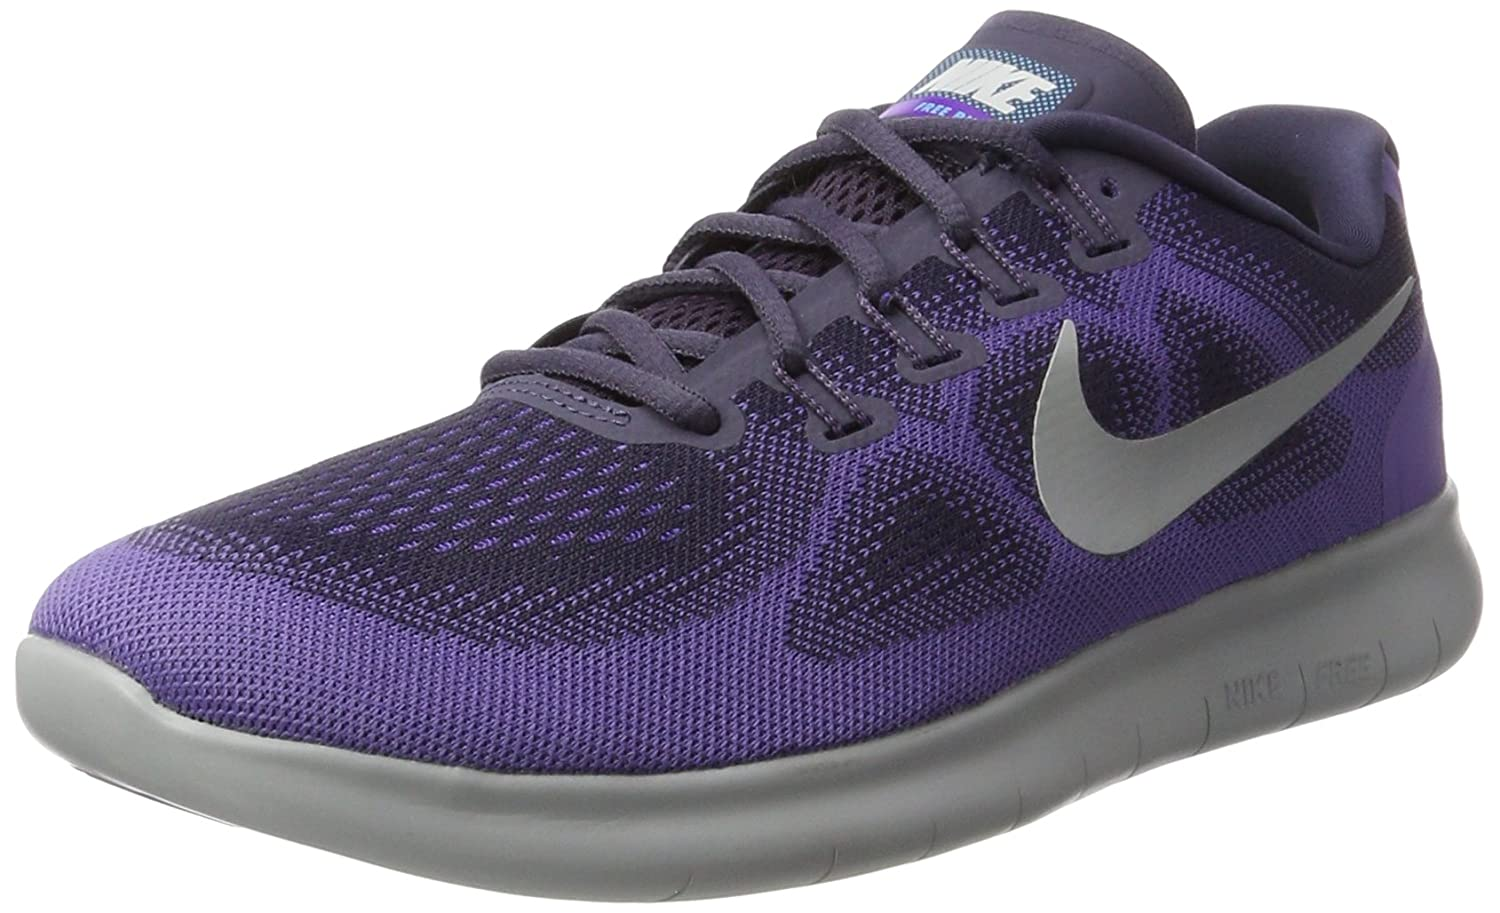 NIKE Women's Free RN 2017 Running Shoe B01K0NQPI2 7.5 B(M) US|Dark Raisin/Pure Platinum-purple Earth